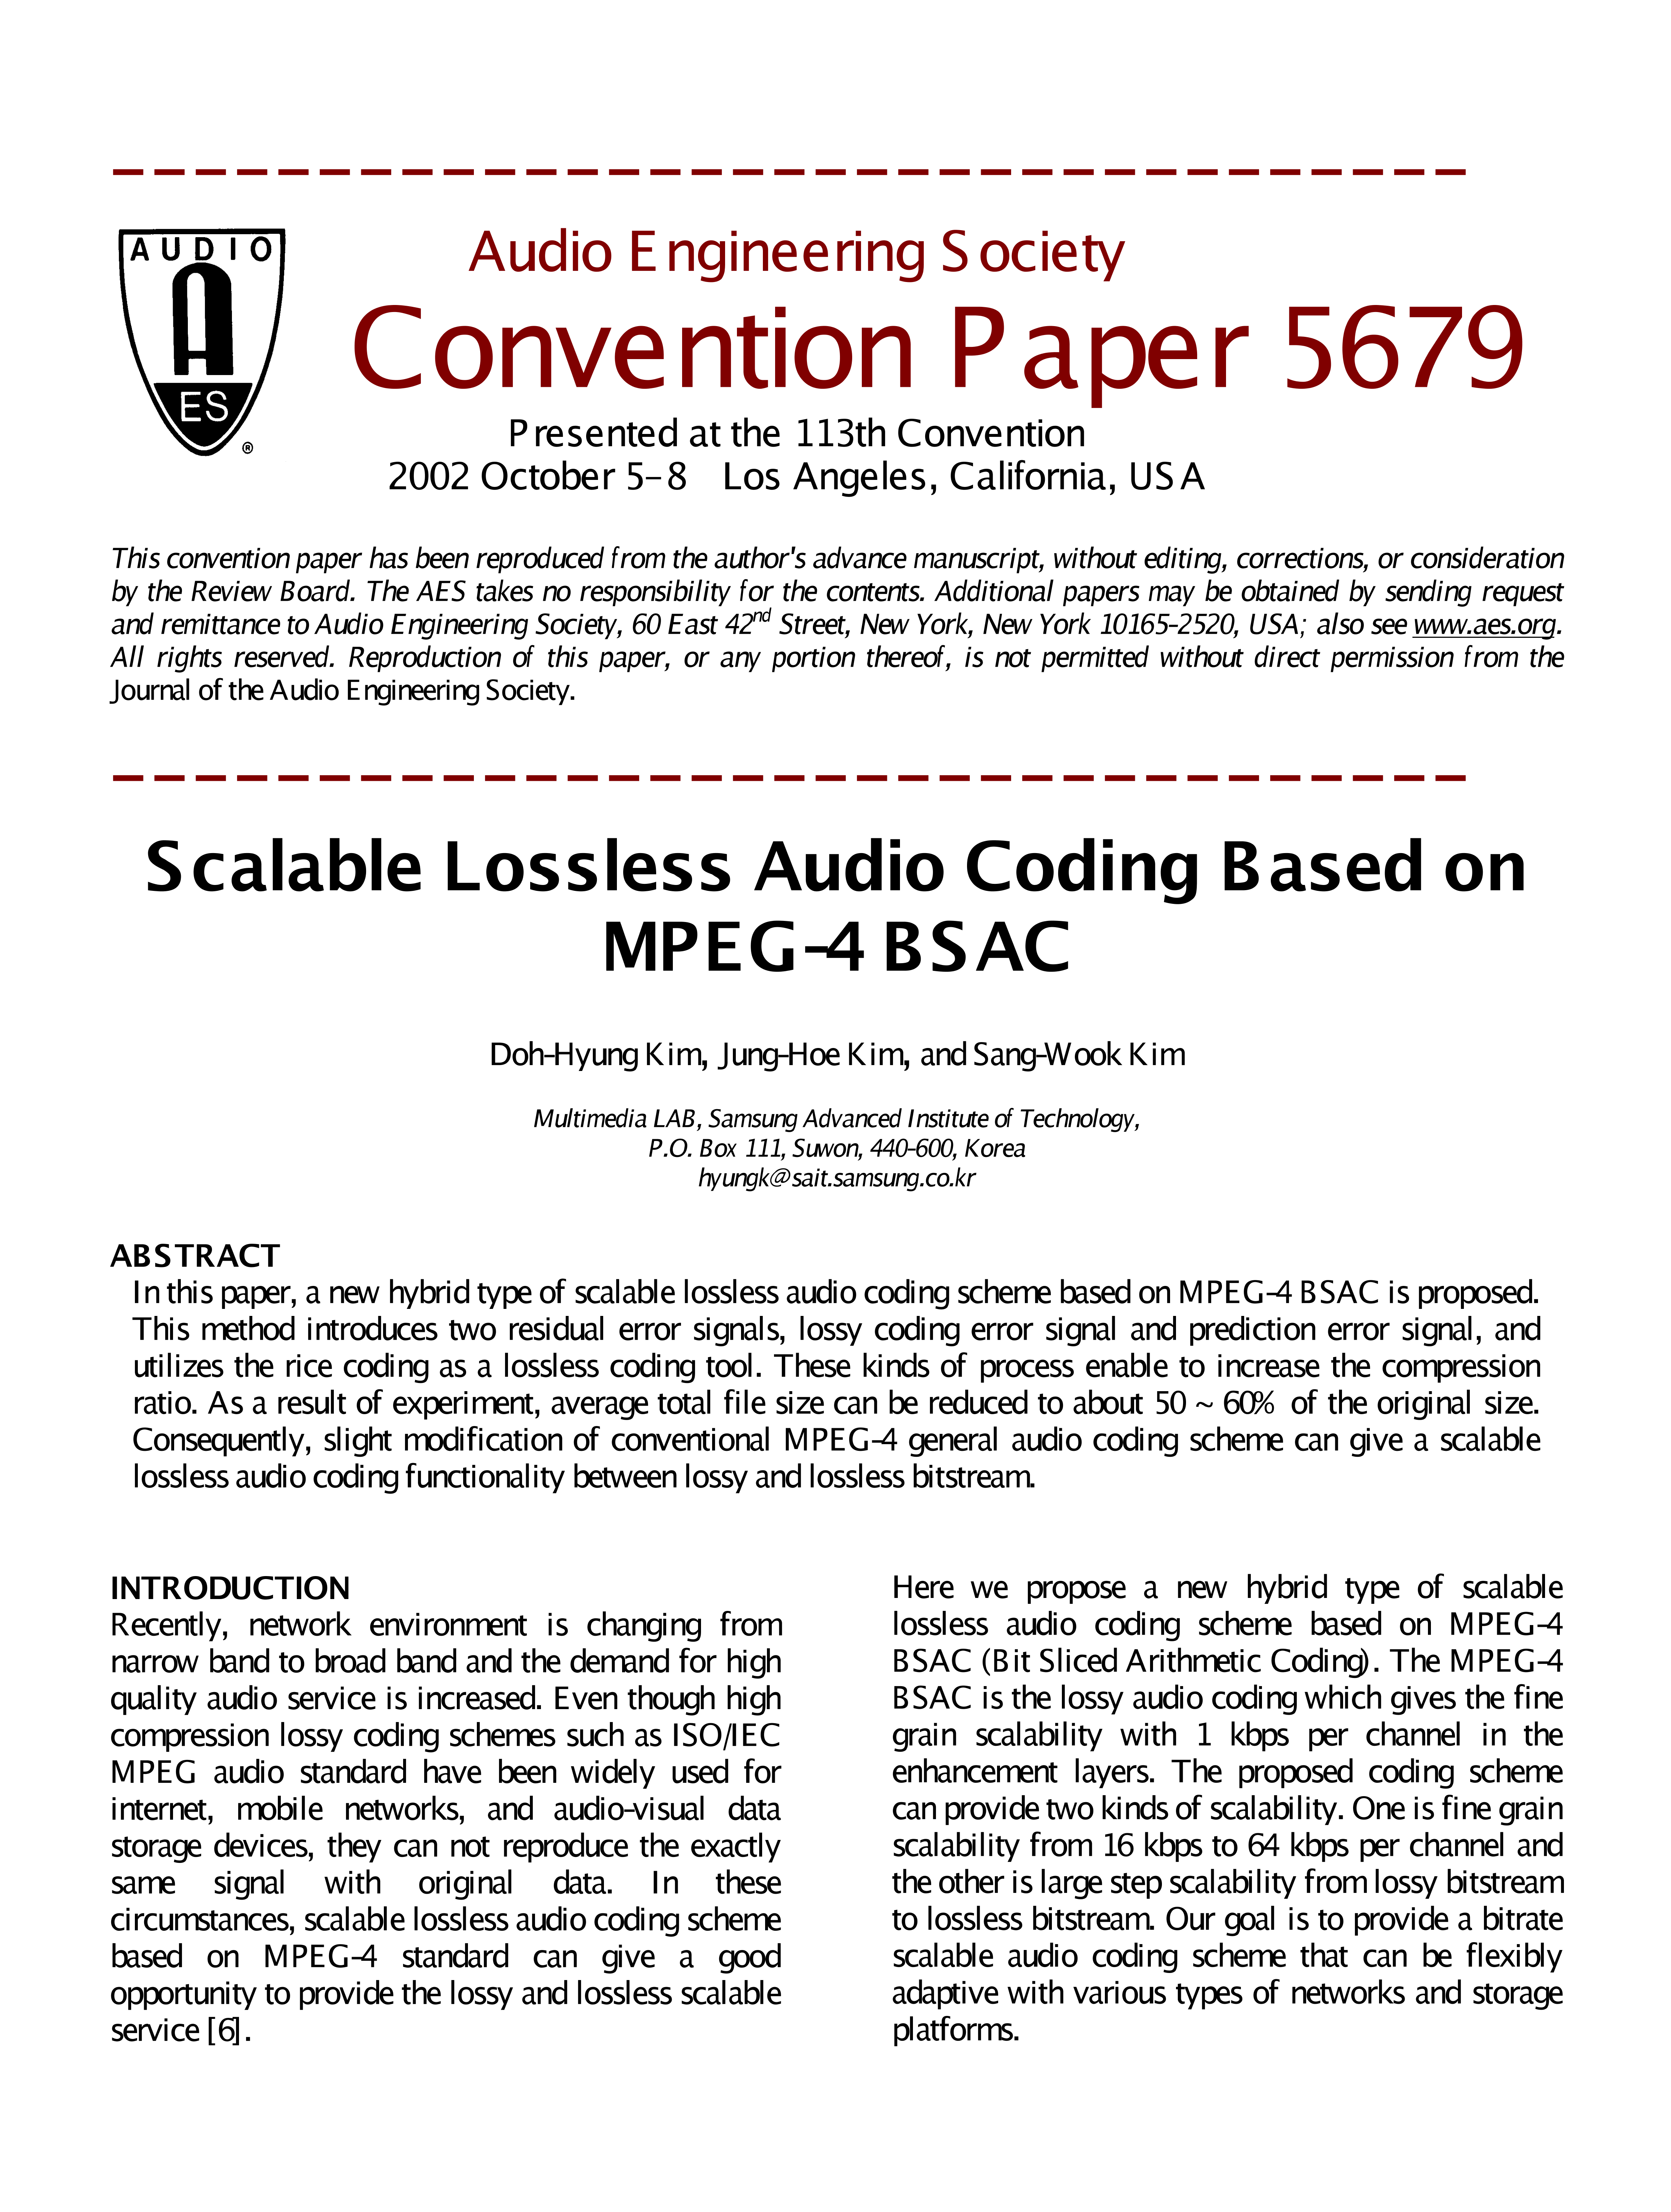 AES E-Library » Scalable Lossless Audio Coding Based on MPEG-4 BSAC